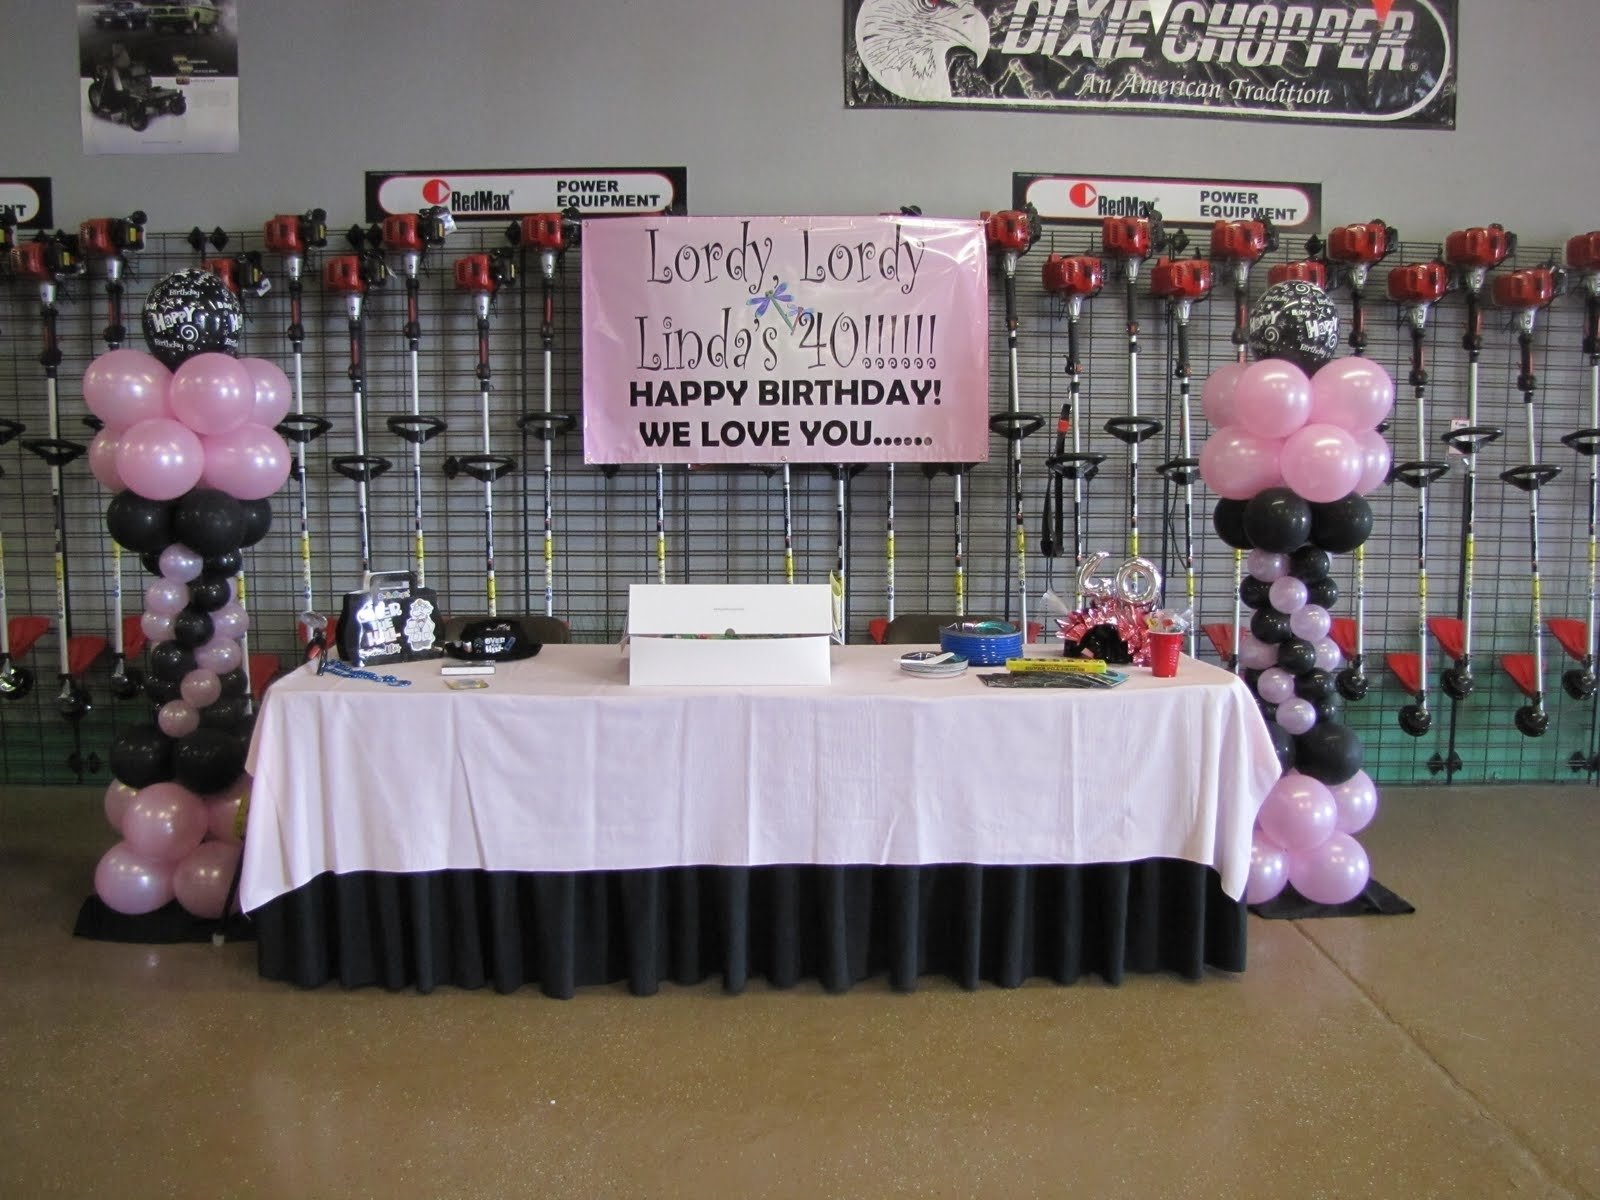 10 Awesome Ideas For 40Th Birthday Party minus the backgroundcute idea for 40th birthday birthdays and 9 2021